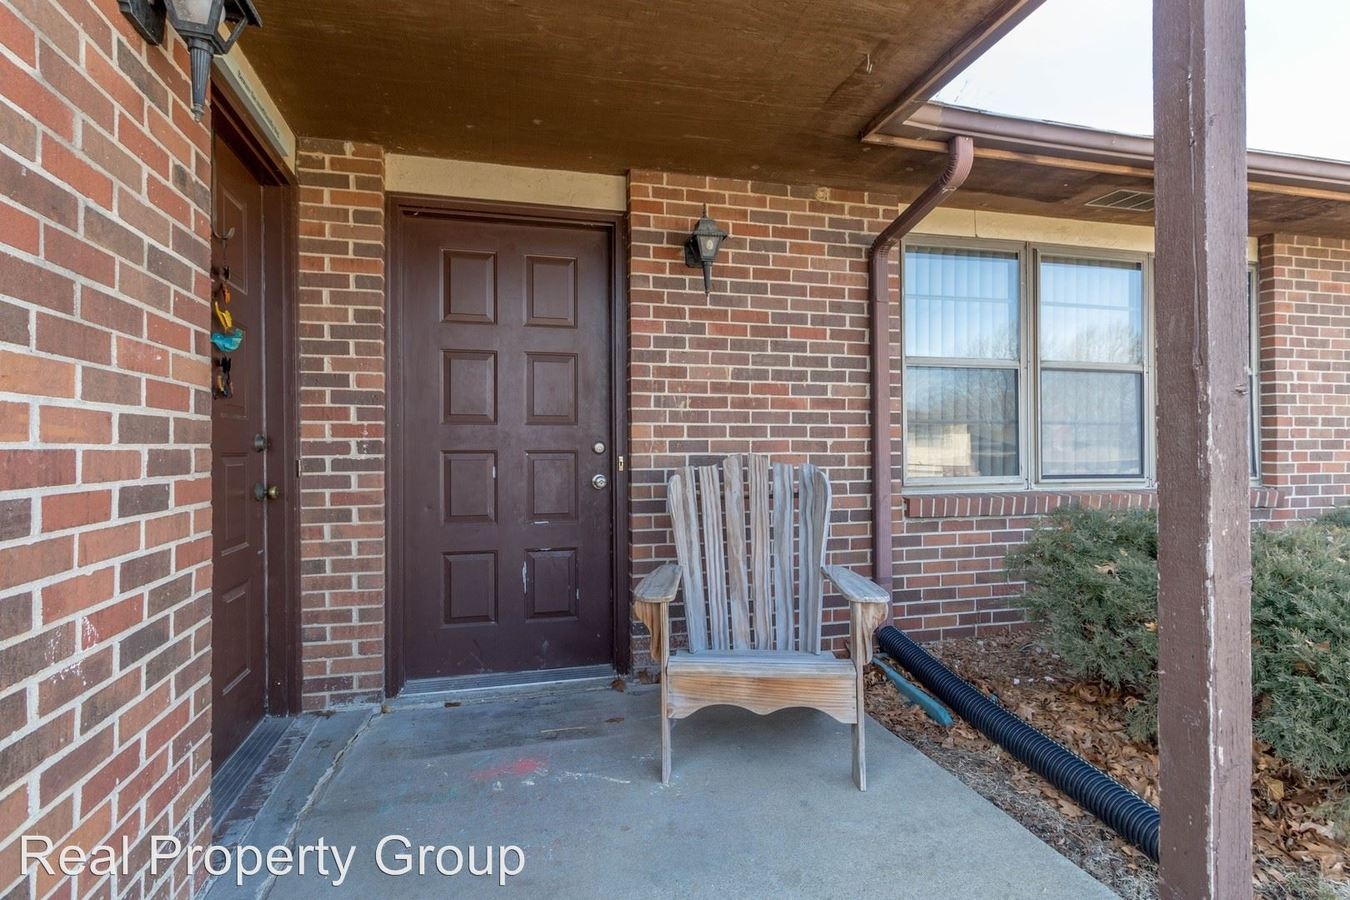 3 Bedrooms 1 Bathroom Apartment for rent at 1609-1611 Handley Place in Columbia, MO